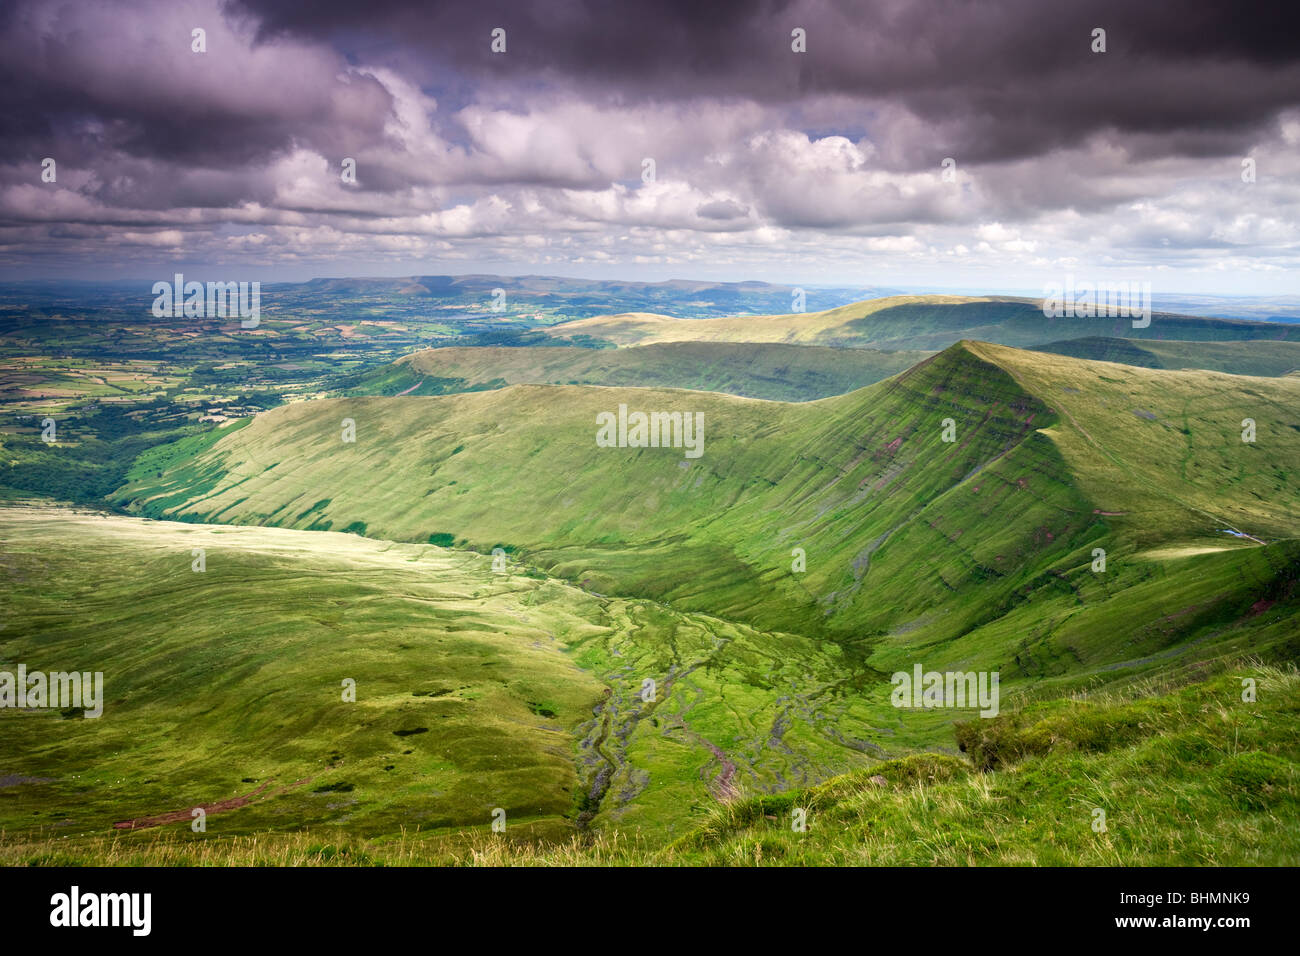 Cribyn betrachtet von Pen-y-Fan, der höchste Berg in den Brecon Beacons National Park, Powys, Wales, UK. (August) Stockbild